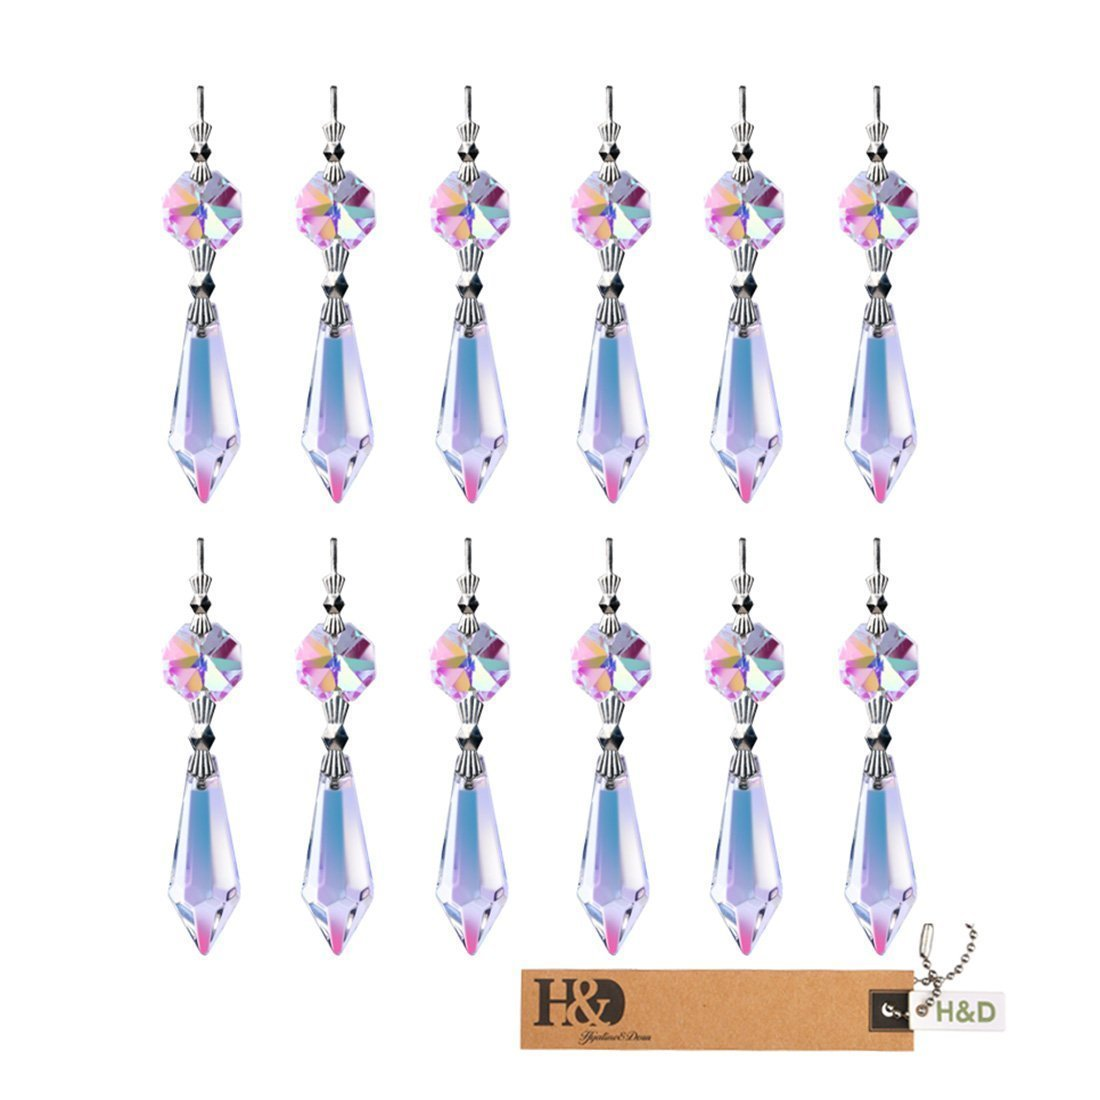 Pack of 5 Usany 20mm Pink Crystal Ball Drop Prisms